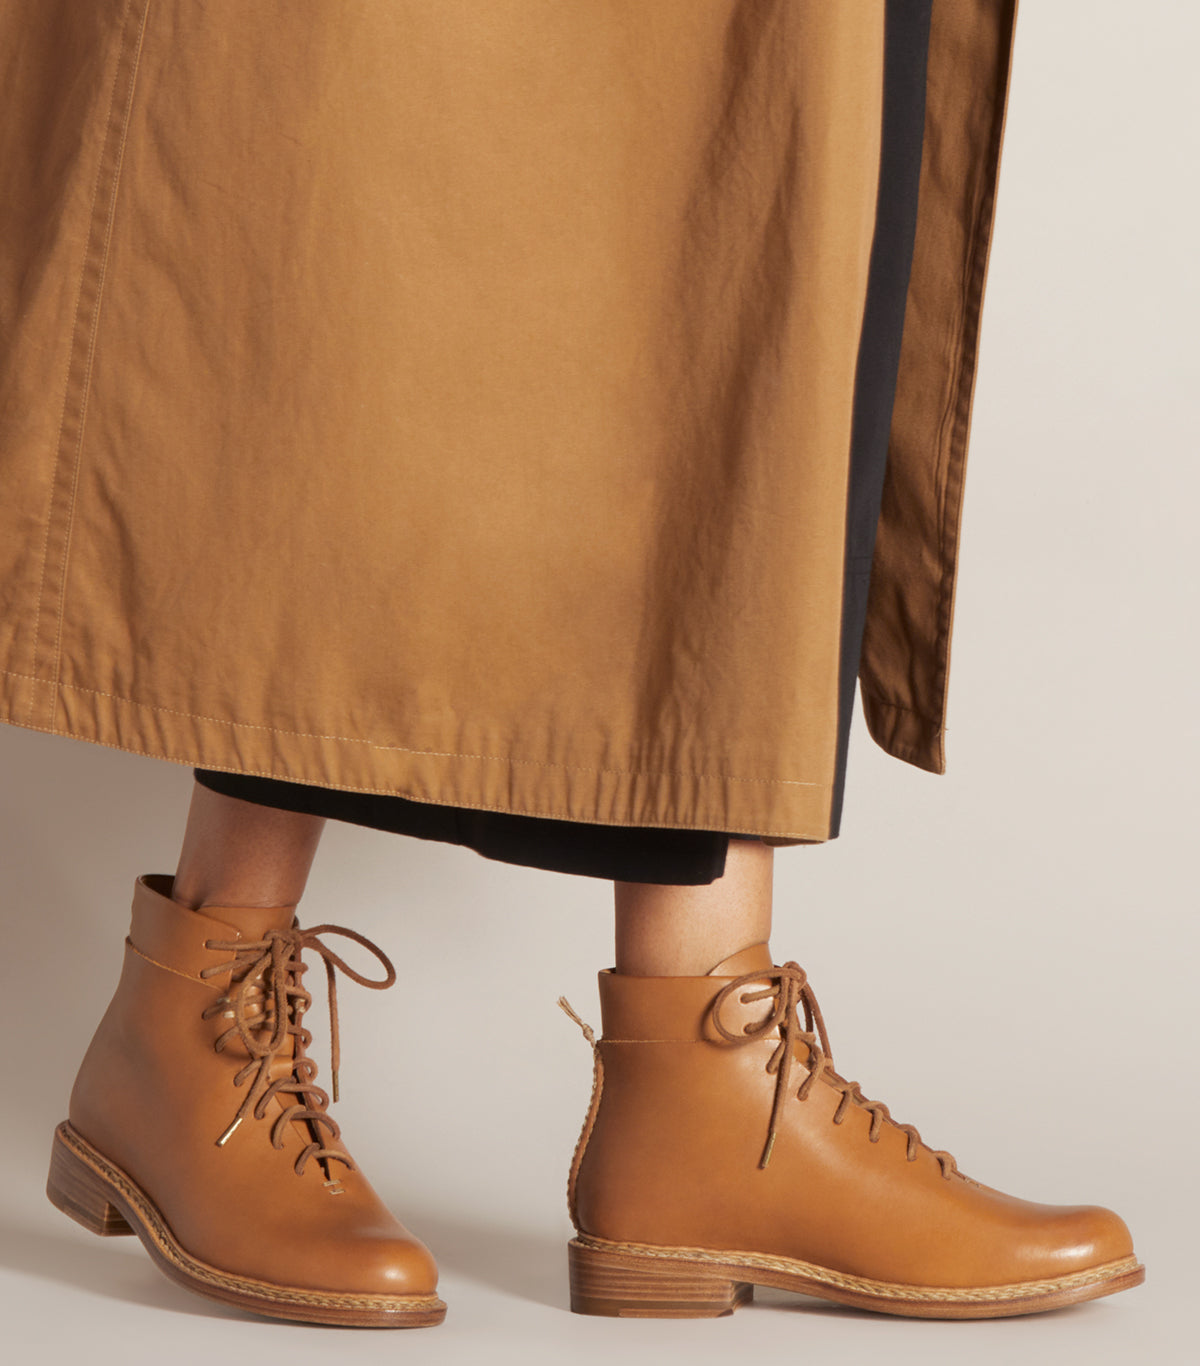 BRAIDED LACE UP BOOT - WFBLUL_TAN